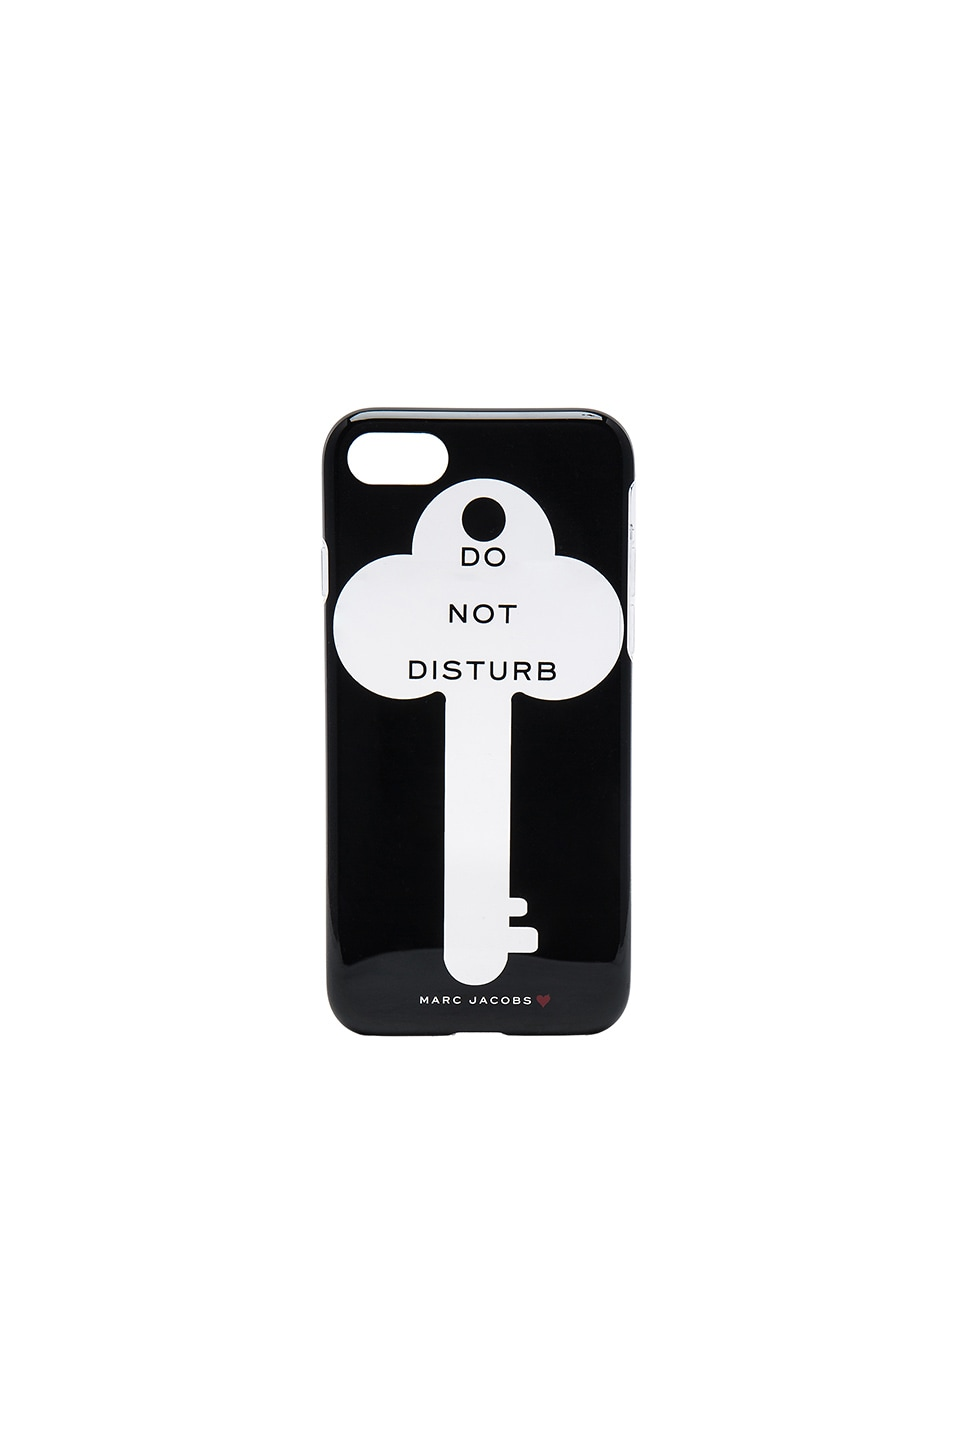 Marc Jacobs Do Not Disturb iPhone 7 Case in Black